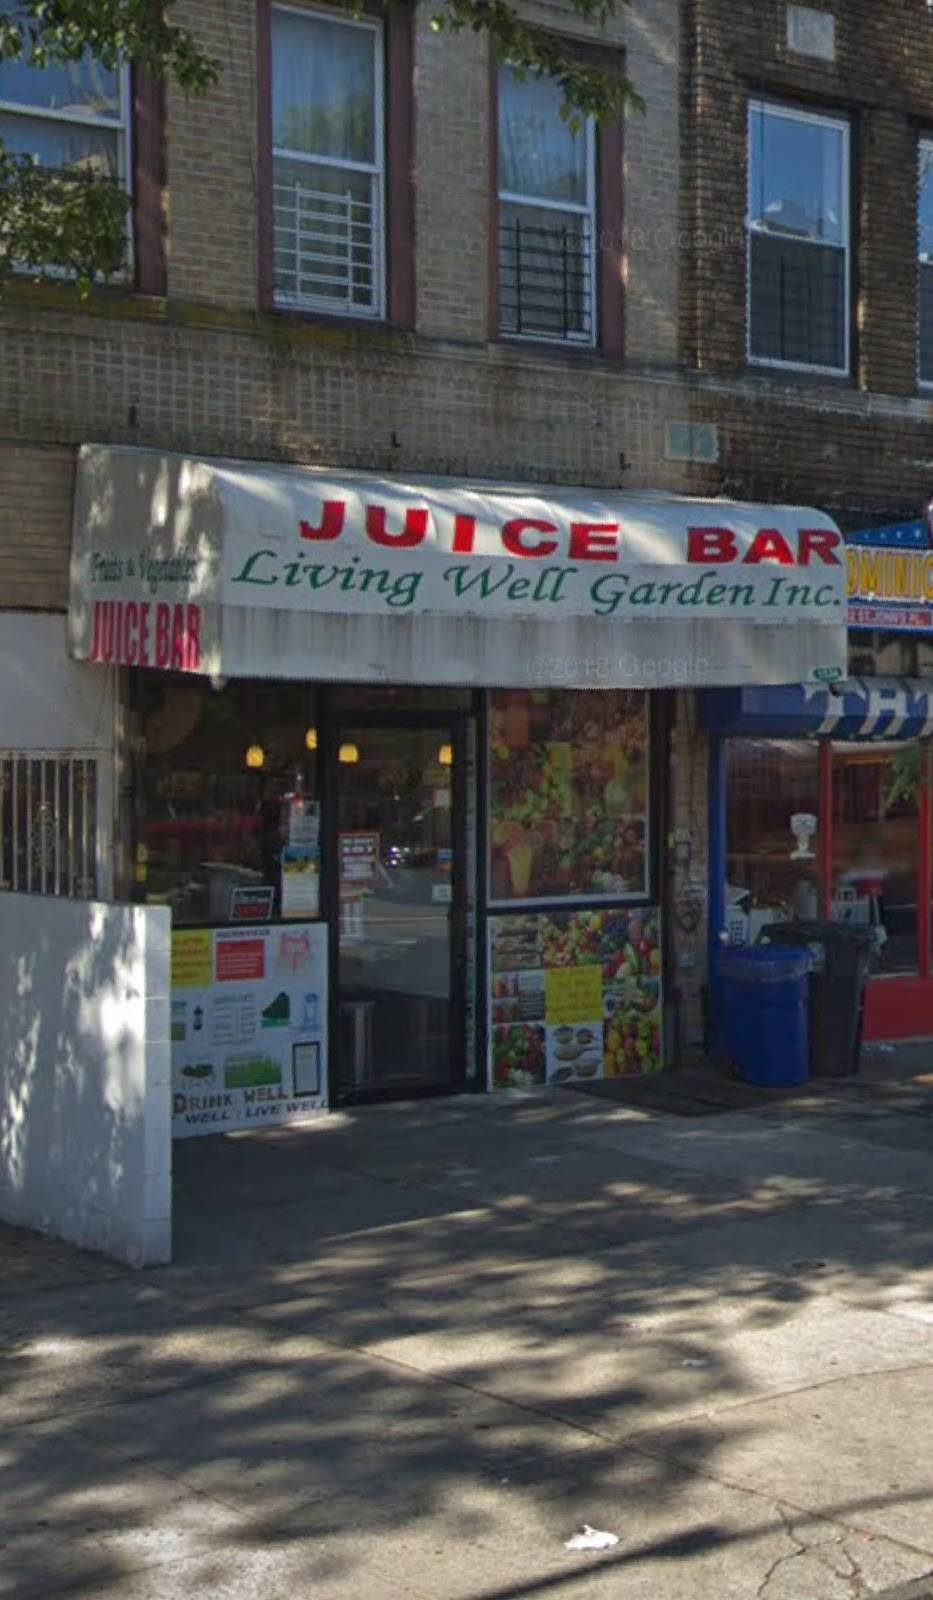 Living Well Garden Juice Bar | restaurant | 1534 St Johns Pl, Brooklyn, NY 11213, USA | 7184840860 OR +1 718-484-0860